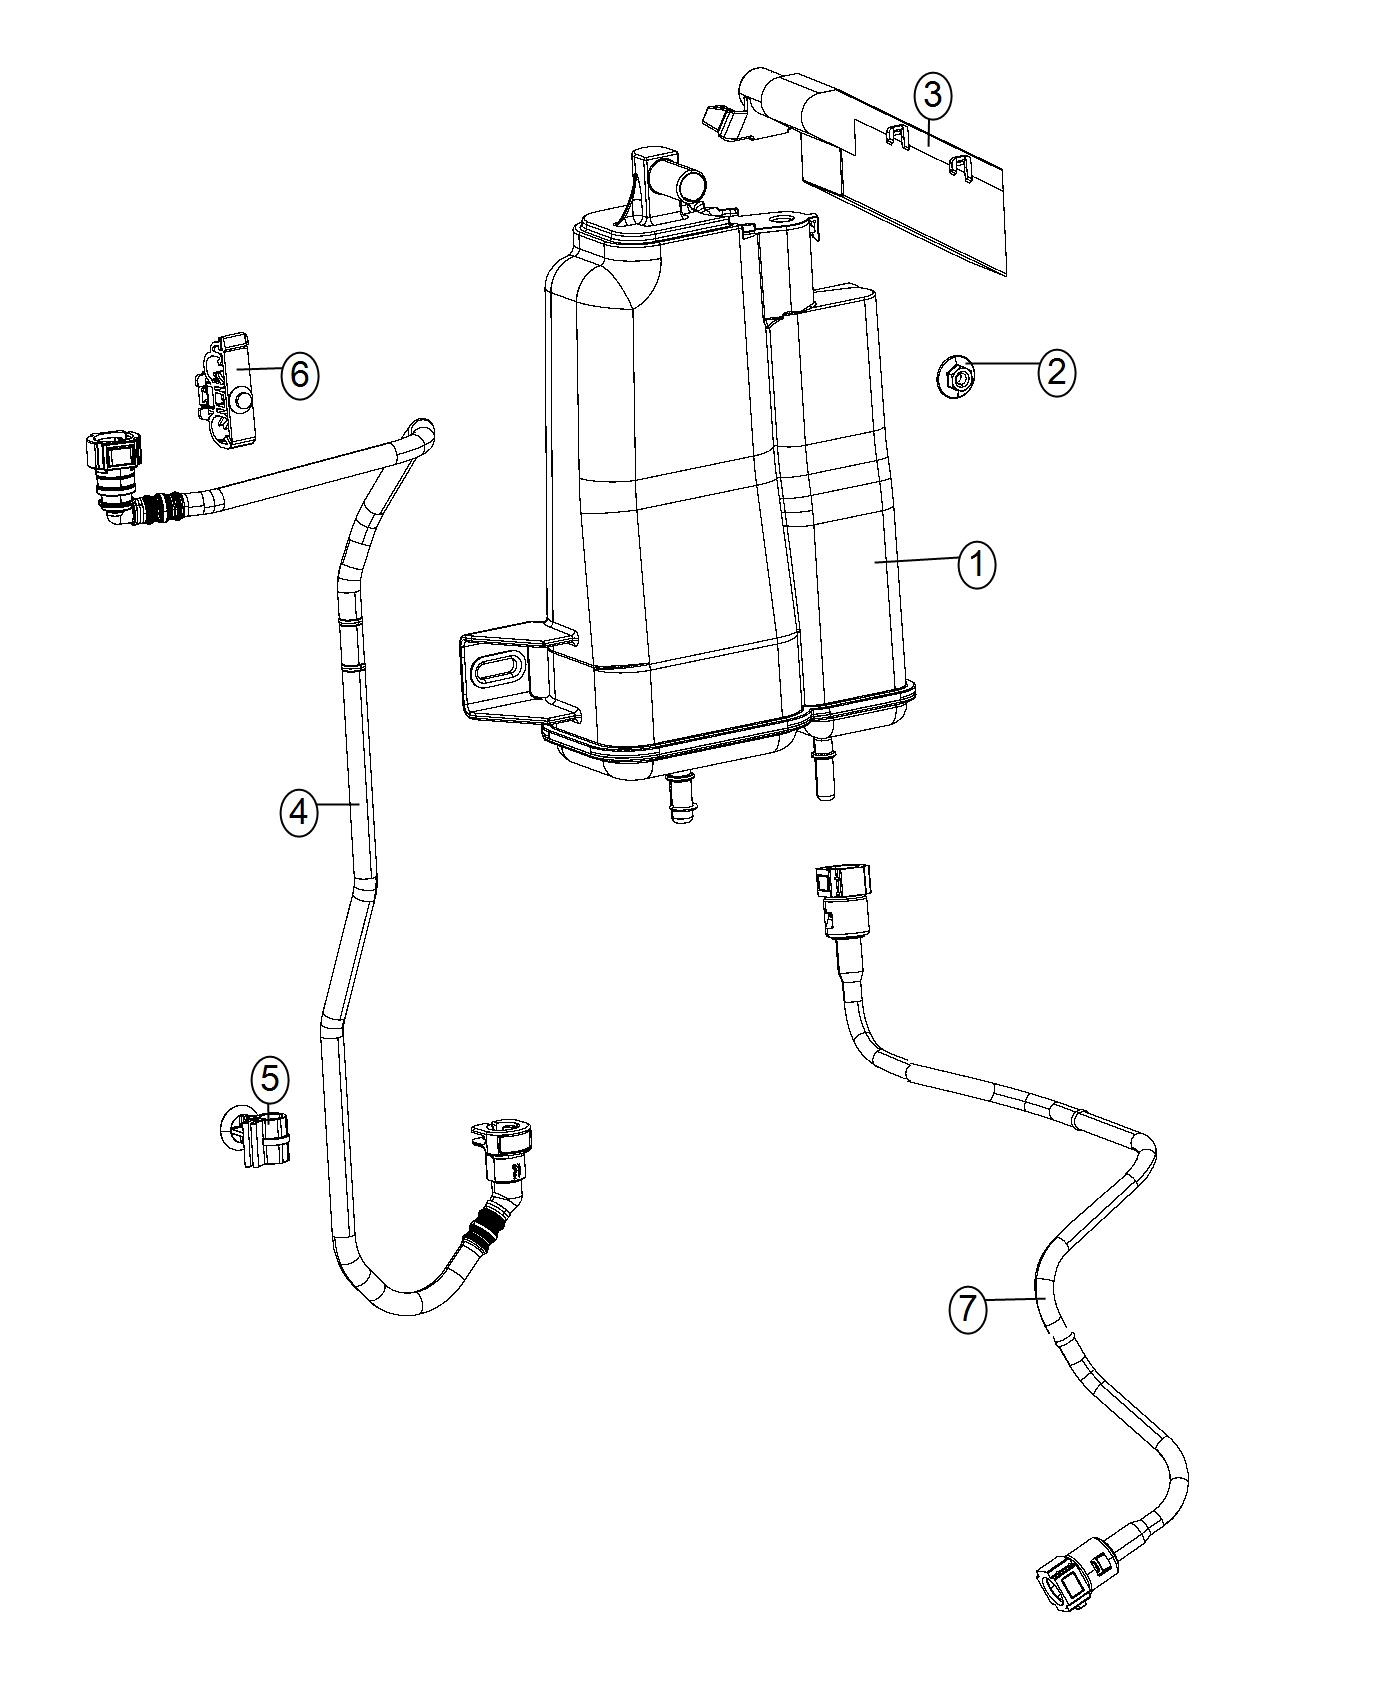 tags: #jeep cherokee fuel filter location#jeep compass fuel filter location#2004  jeep wrangler fuel filter location#1997 jeep wrangler fuel filter